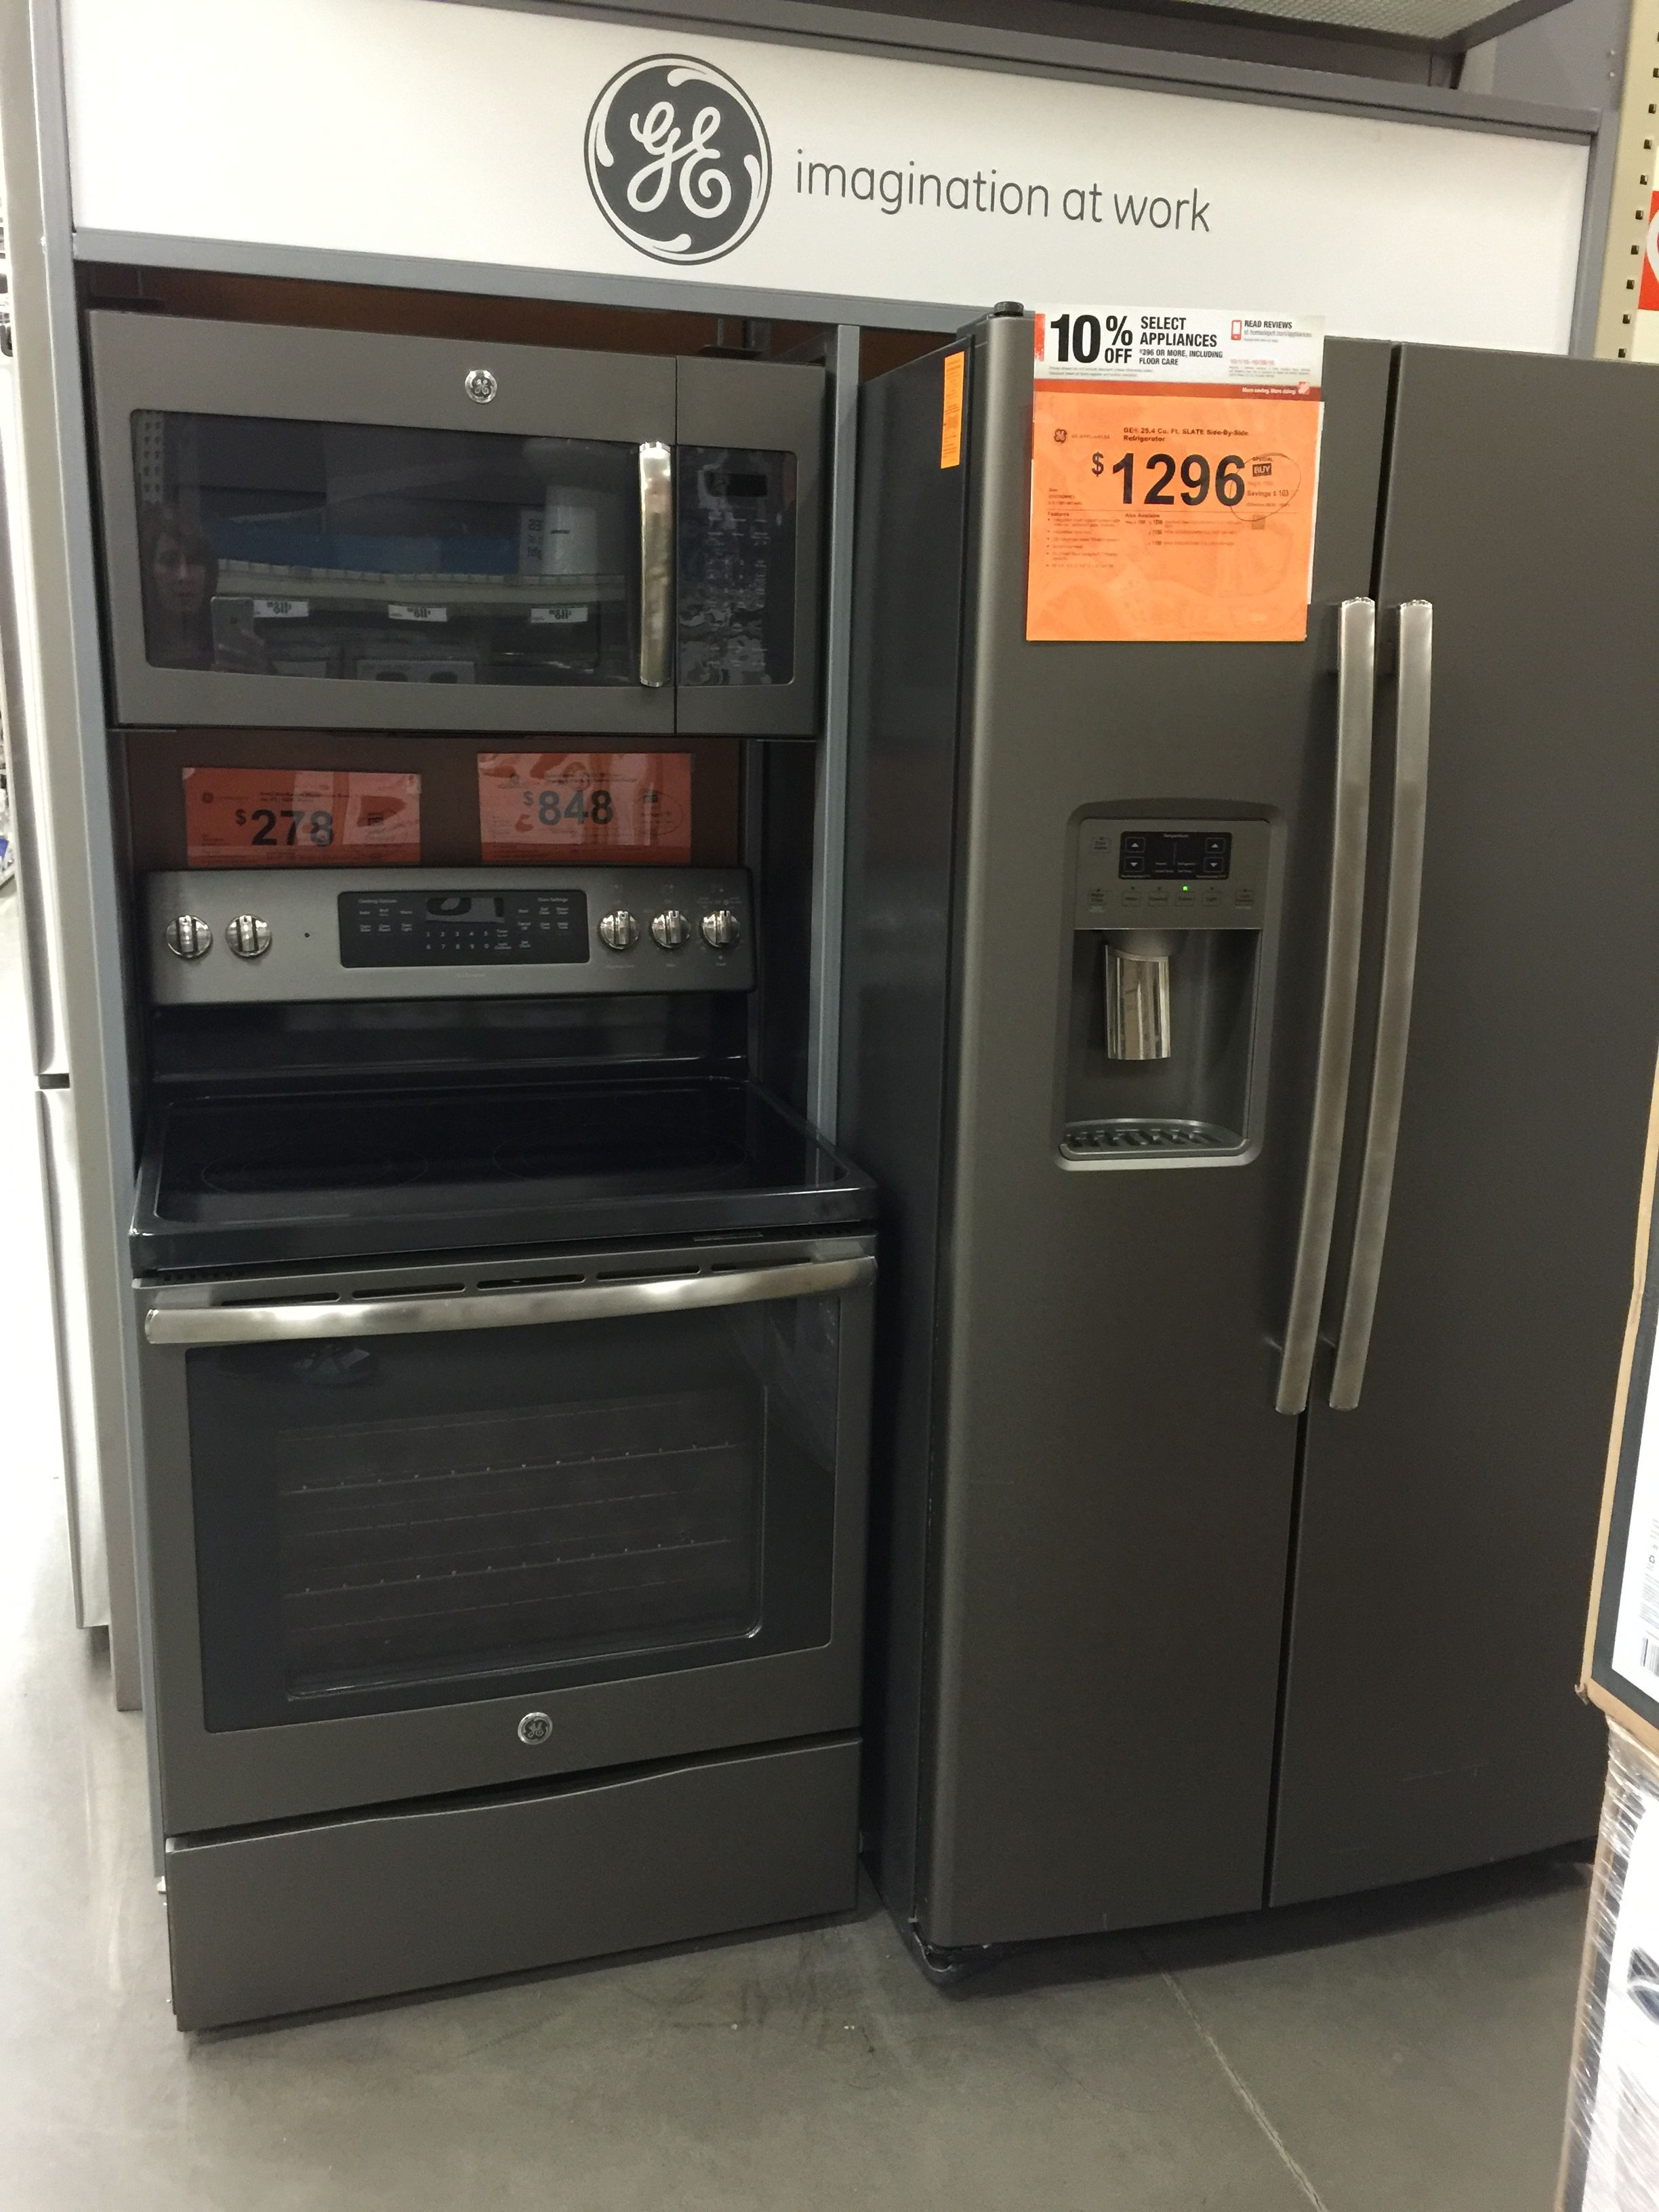 GE SLATE Colored Fridge, Microwave, And Oven.Beautiful And Not As Pricey As  Stainless Steel!